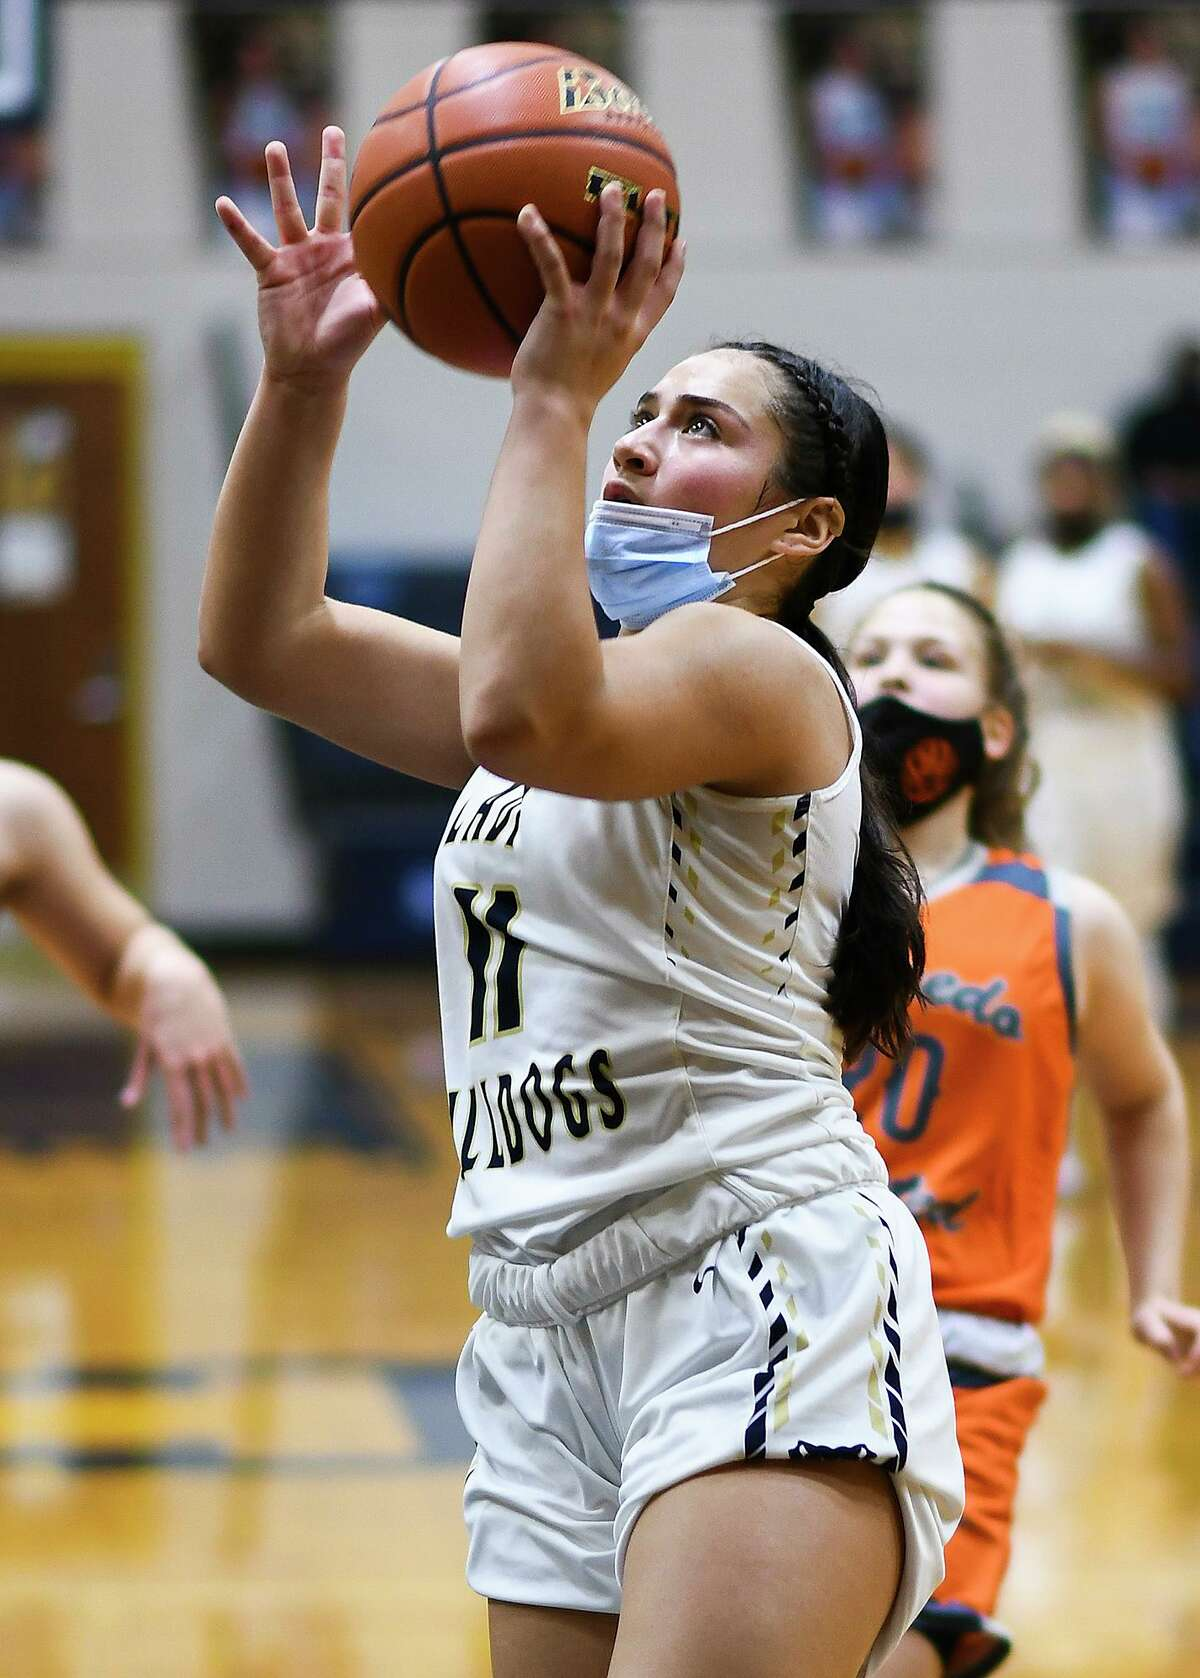 Alexander senior-to-be Kayla Herrera aims to play college basketball after her high school career is over.